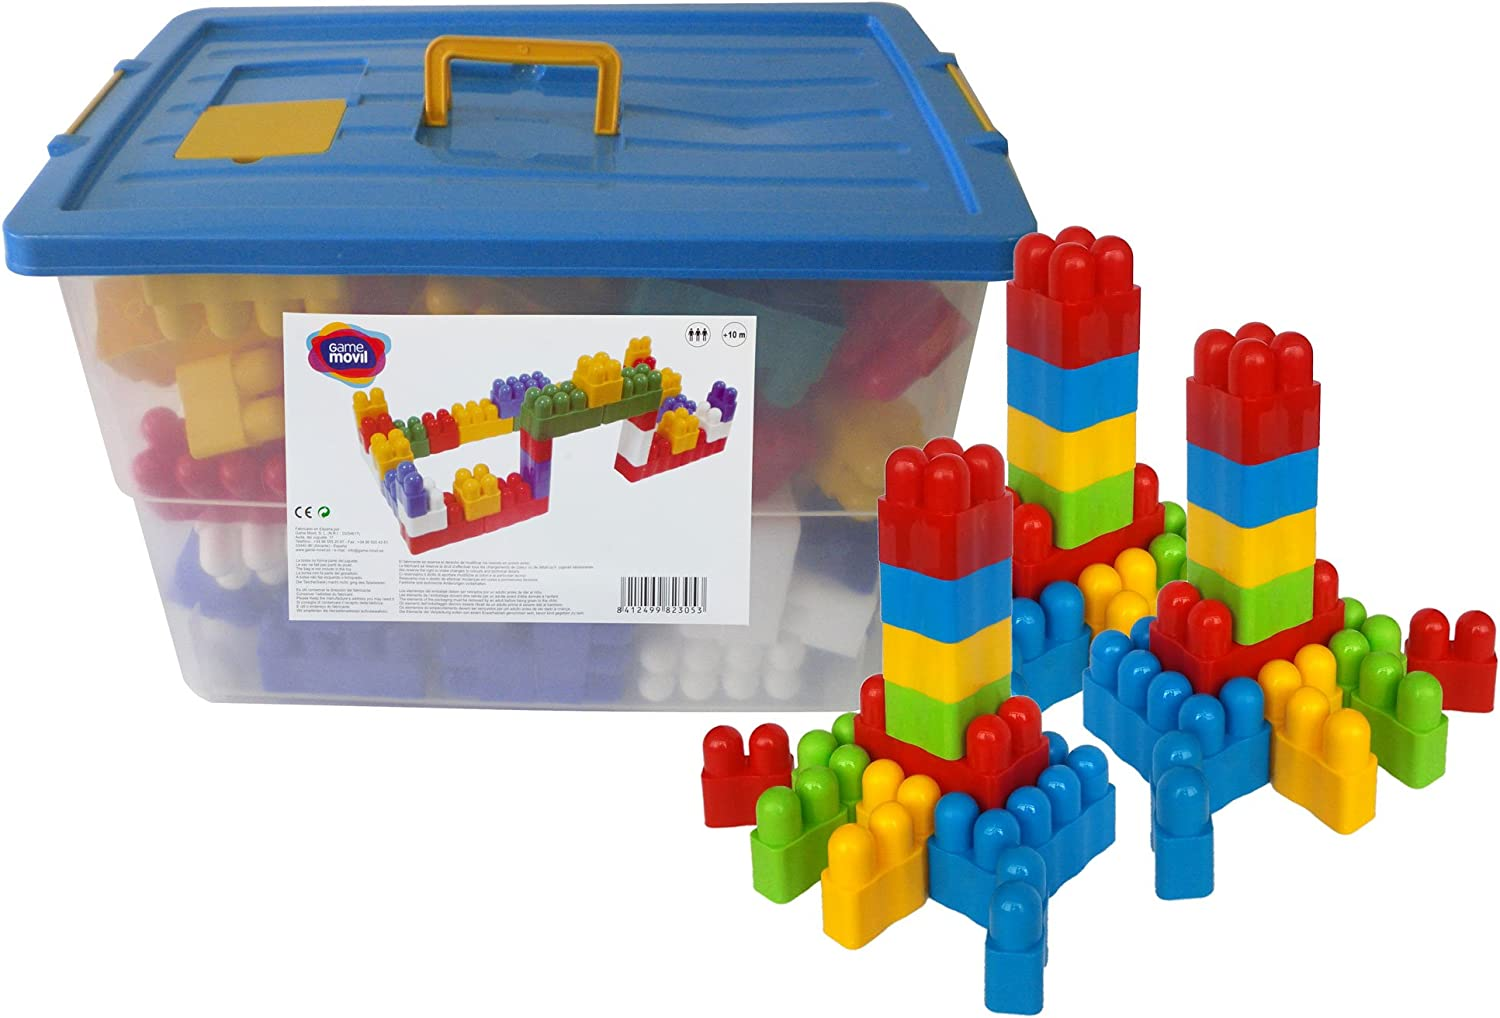 Game Movil 150 pieces Blockis Extra Large Construction Game  in large toy box